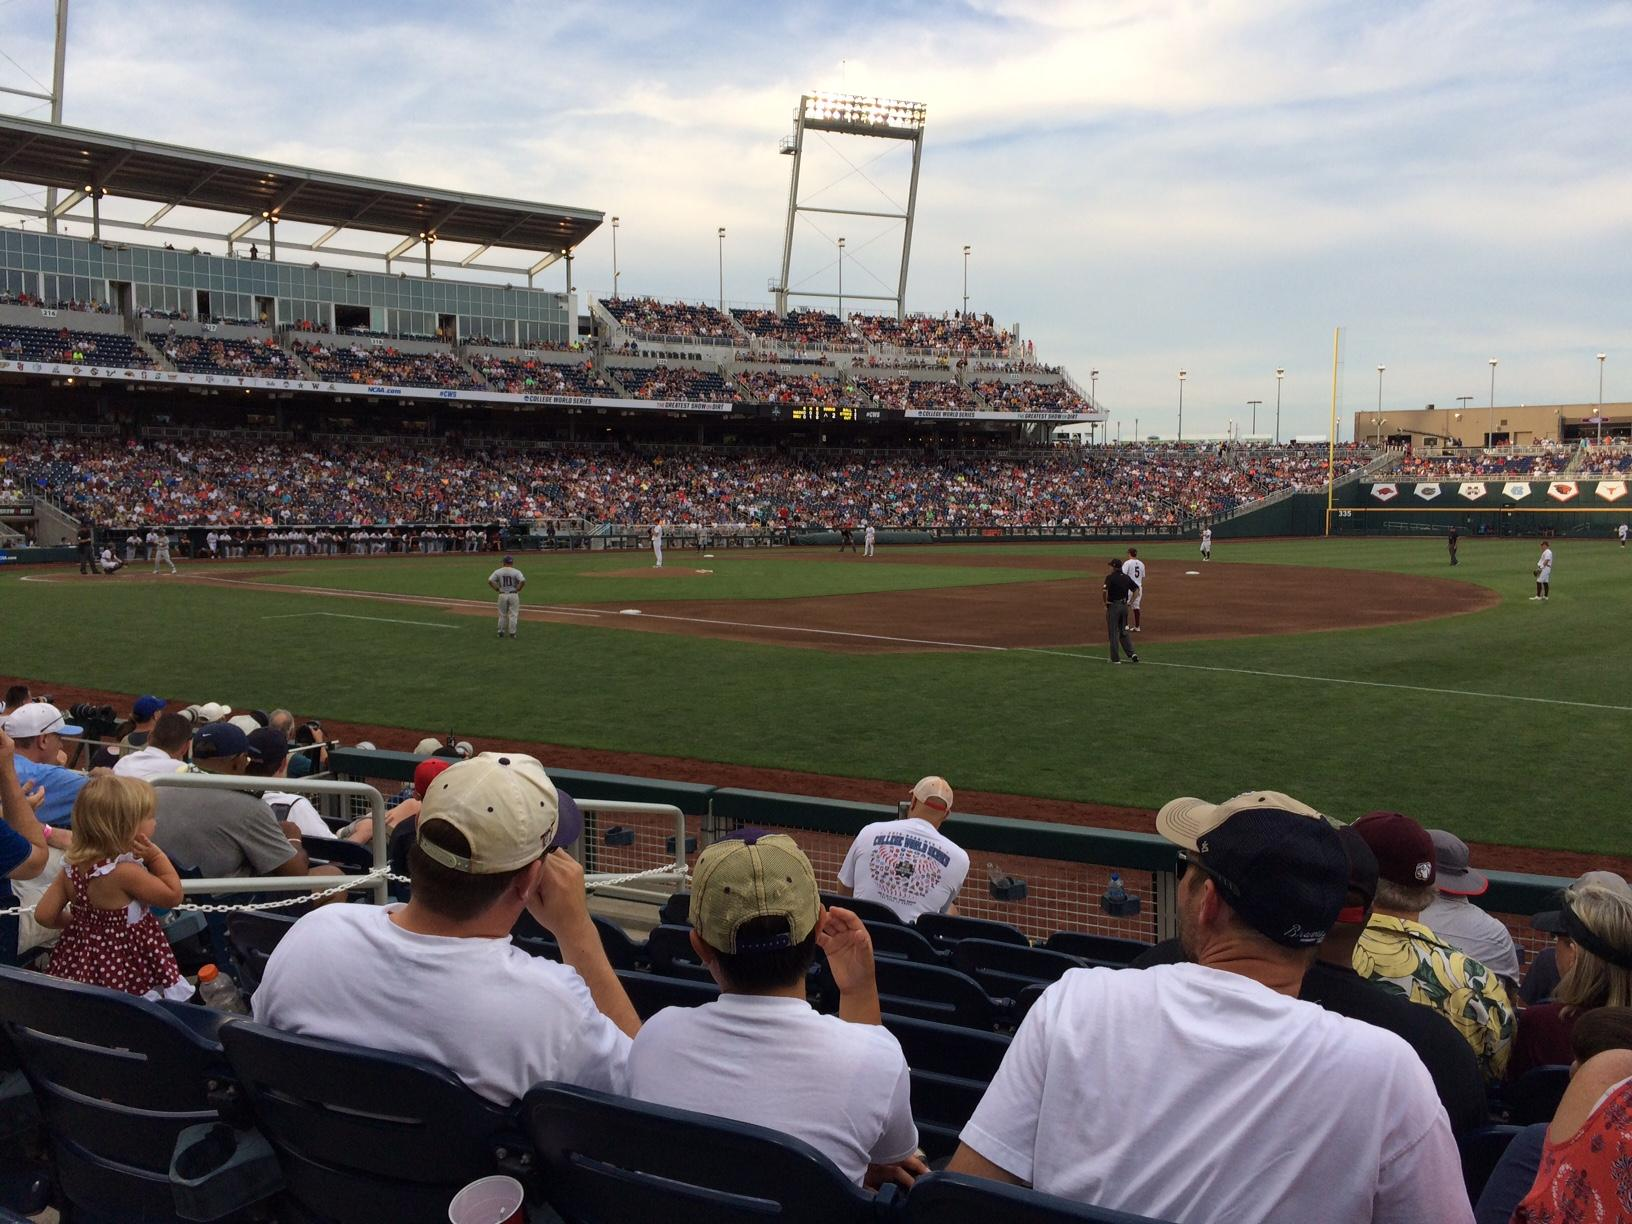 TD Ameritrade Park Section 104 Row 9 Seat 18